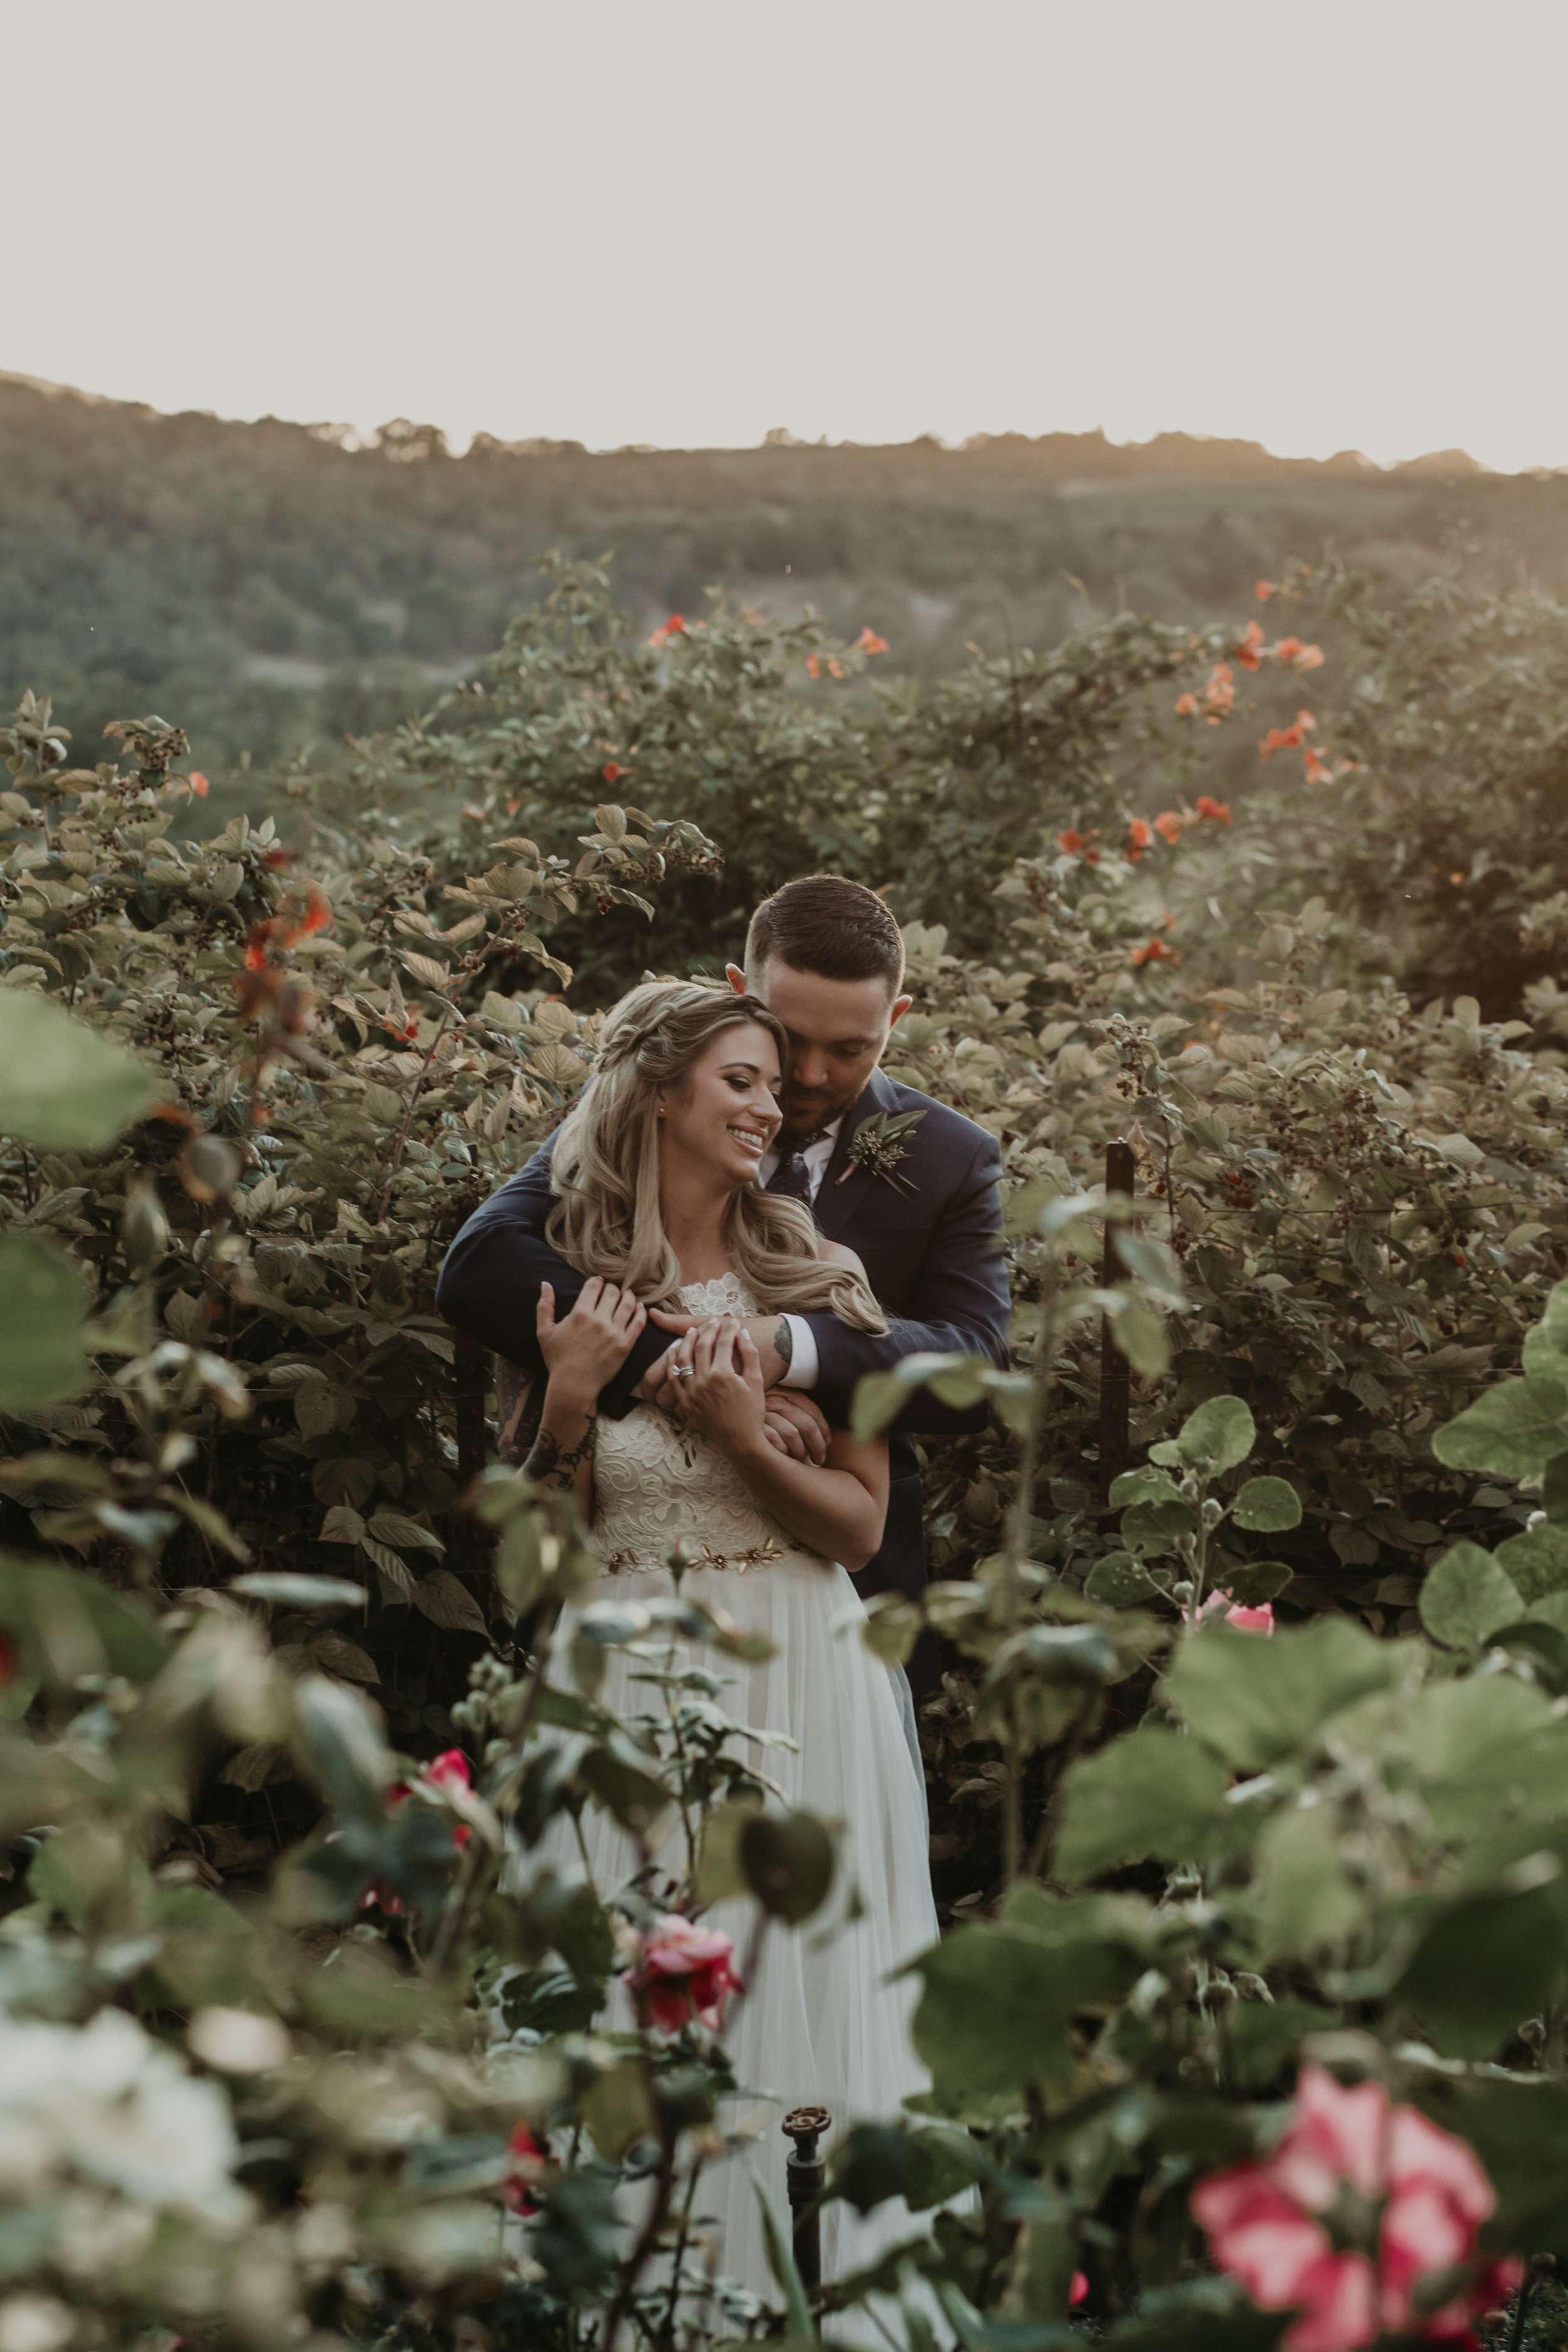 Garden wedding with beautiful floral design by Venn Floral in Glen Ellen at Beltane Ranch photographed by Vera Frances with Whitney Nelson Events and Park Avenue Catering.